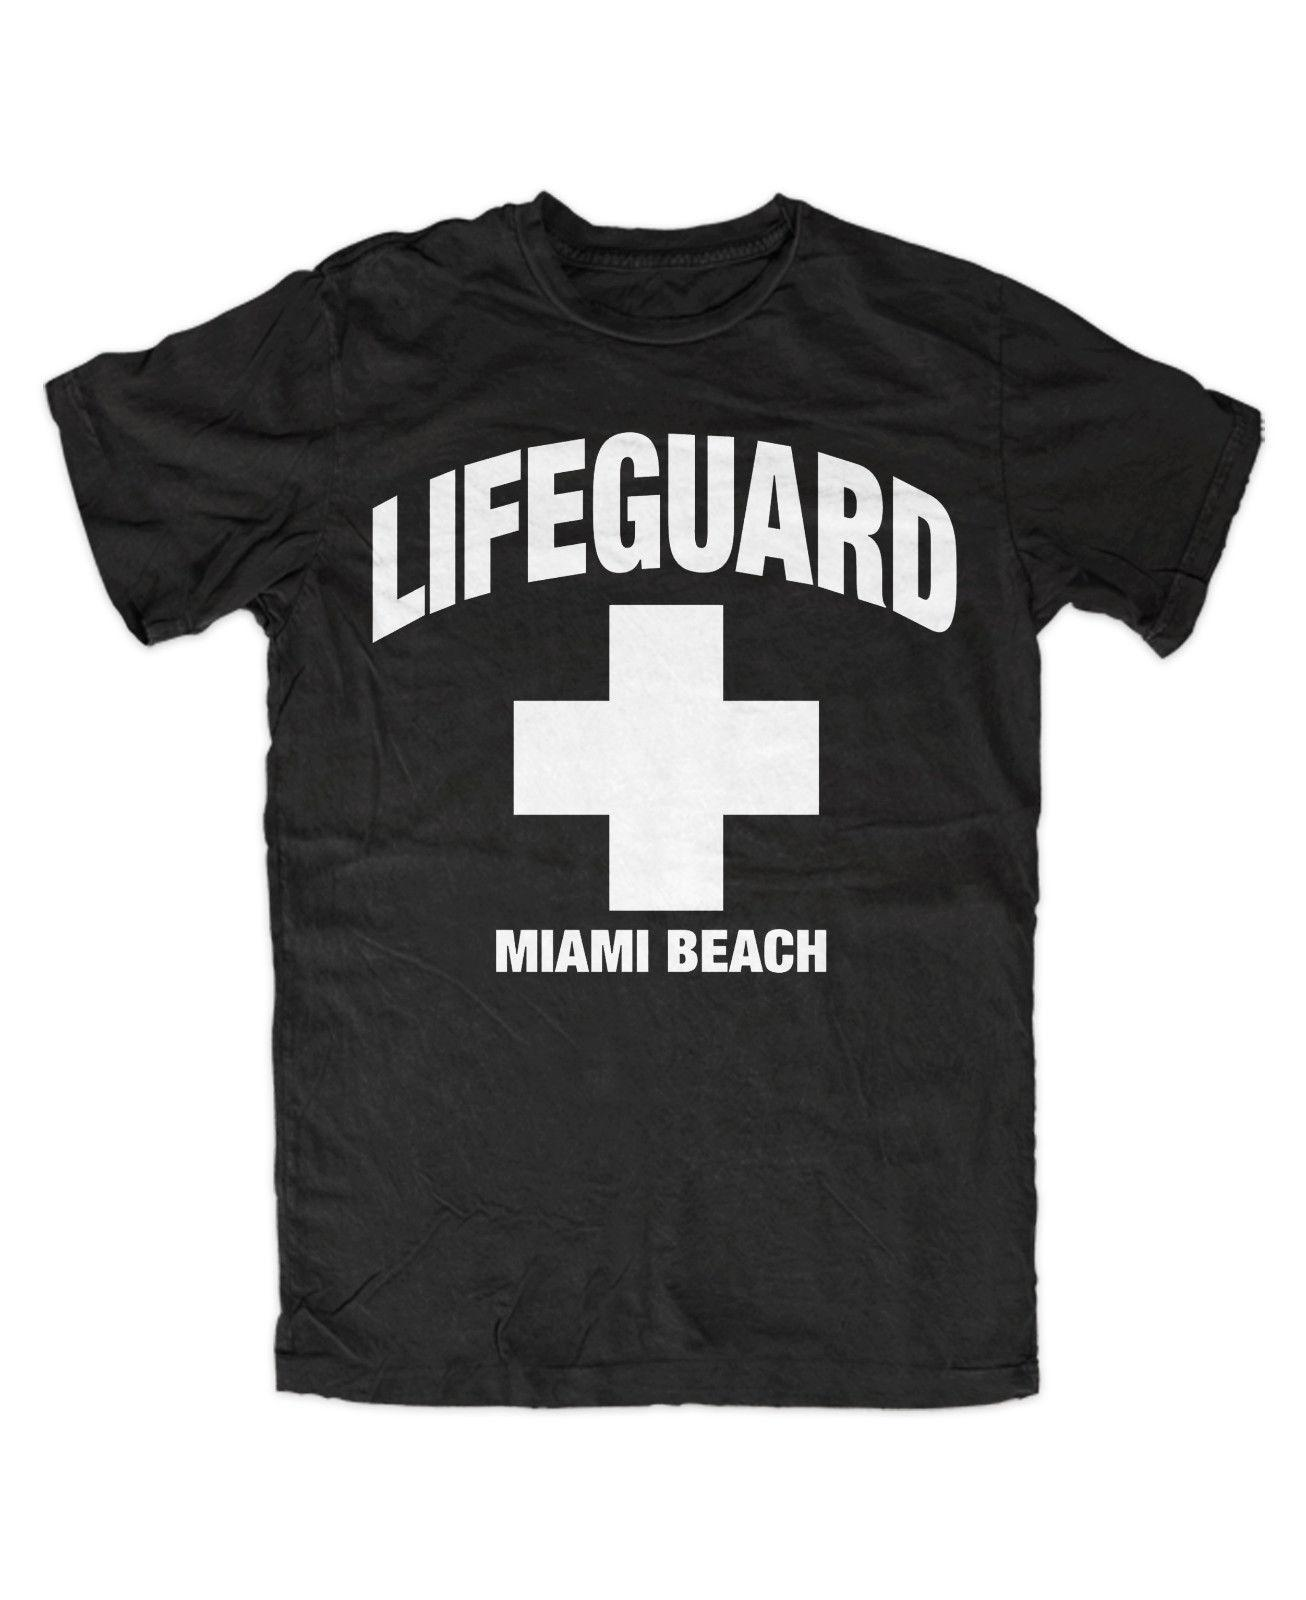 92d2f4a8e3f Lifeguard Miami Beach T Shirt David Hasselhoff